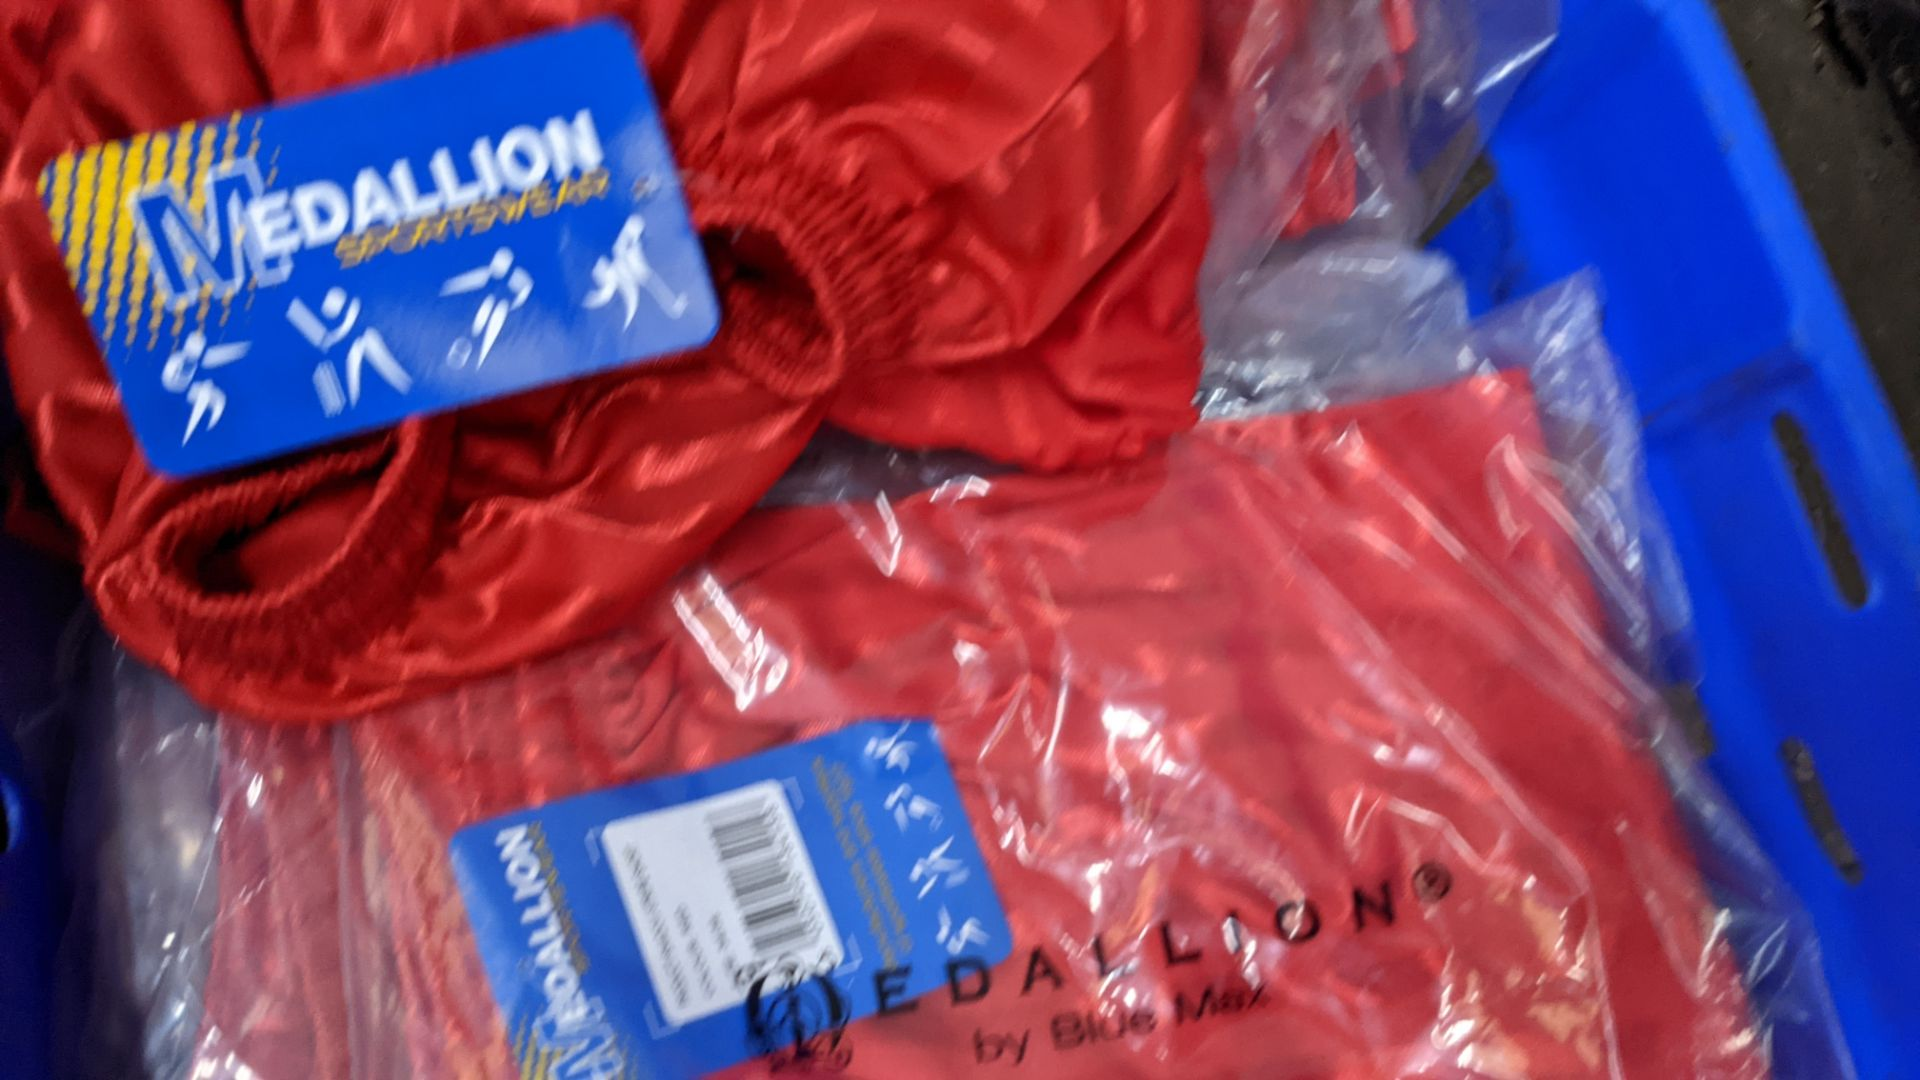 Approx 20 off red children's sports shorts - Image 4 of 5